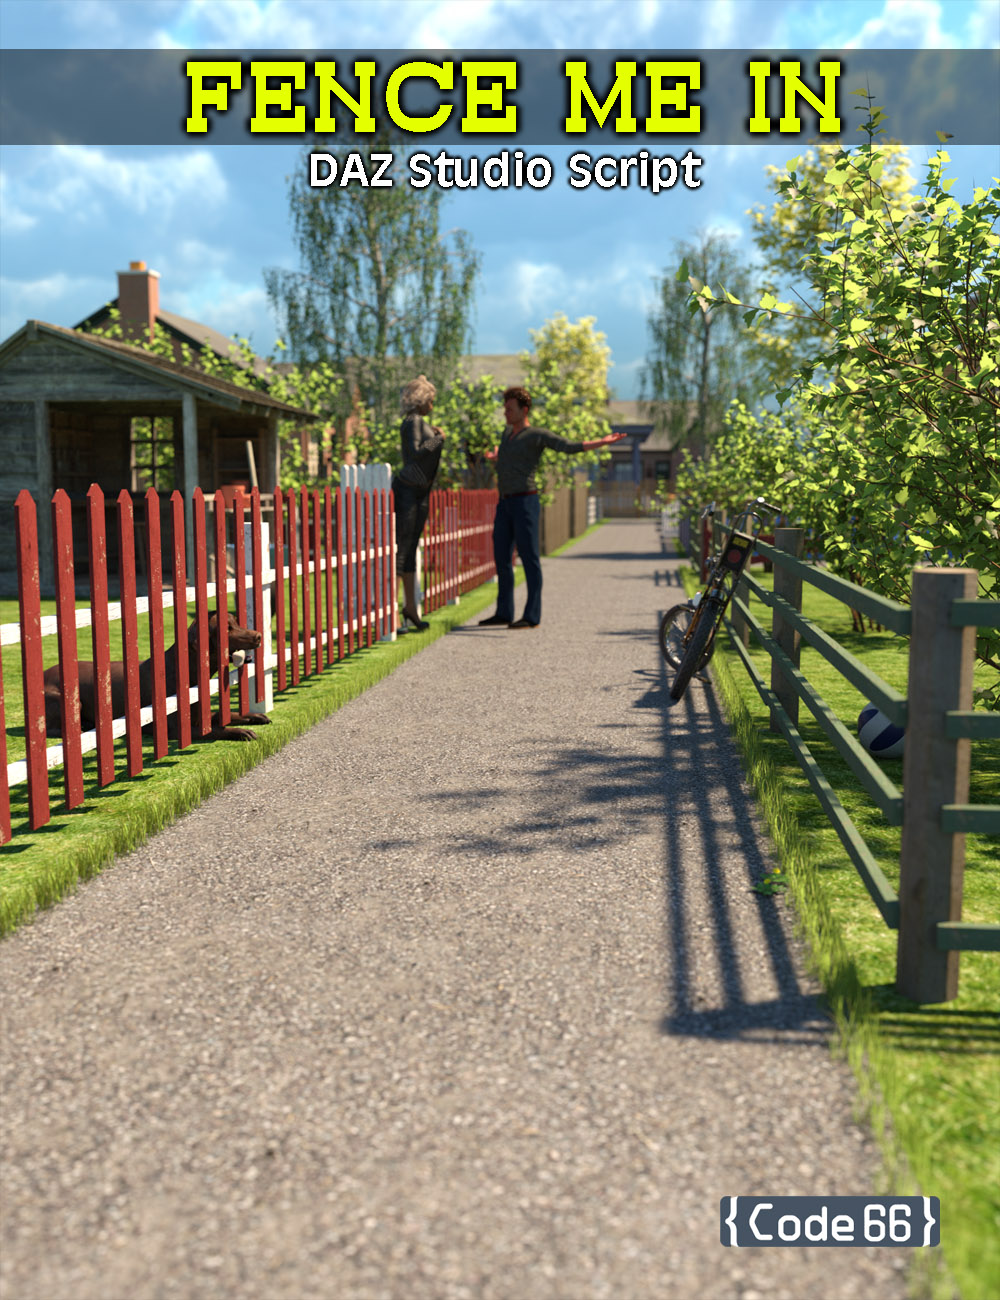 Fence Me In by: Code 66, 3D Models by Daz 3D